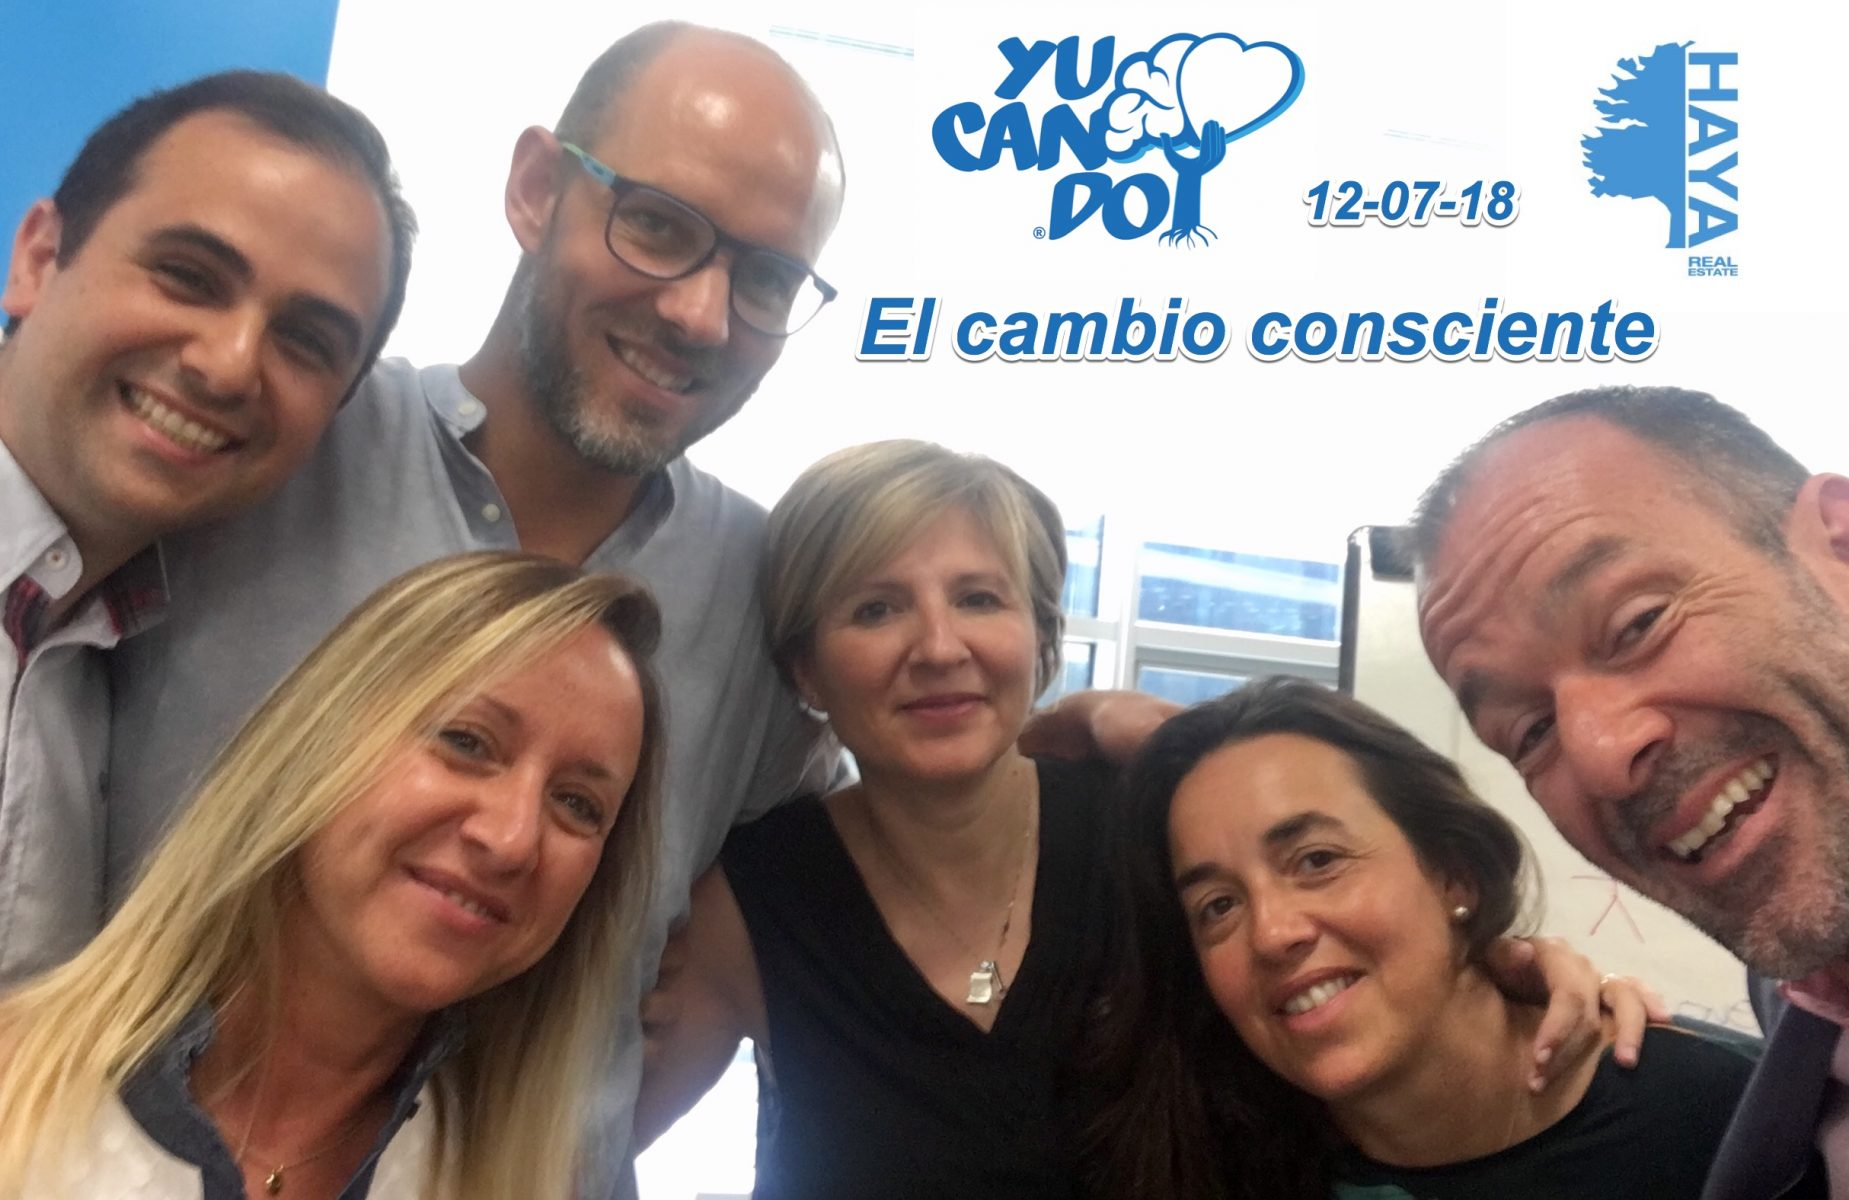 Taller introductorio de Awareness Yucando y productividad para directivos de Haya Real State en Madrid